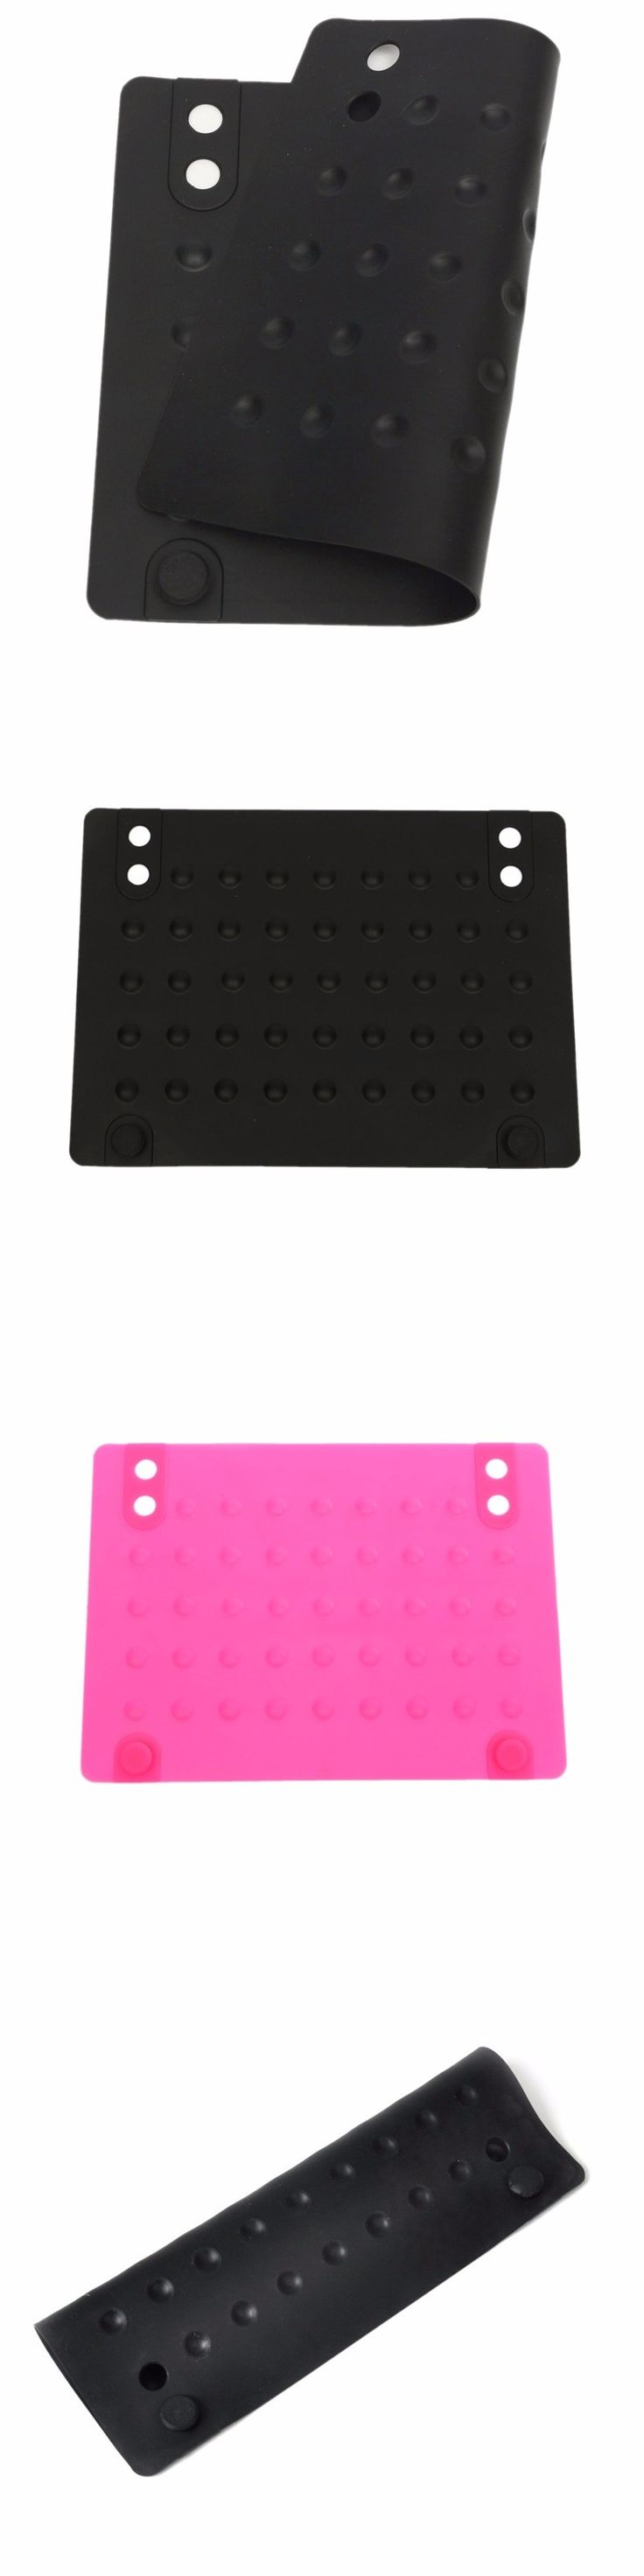 JEYL Hot Silicone Heat Resistant Mat Anti-heat Mats for Hair Straightener Curling Iron (black) 215*165cm